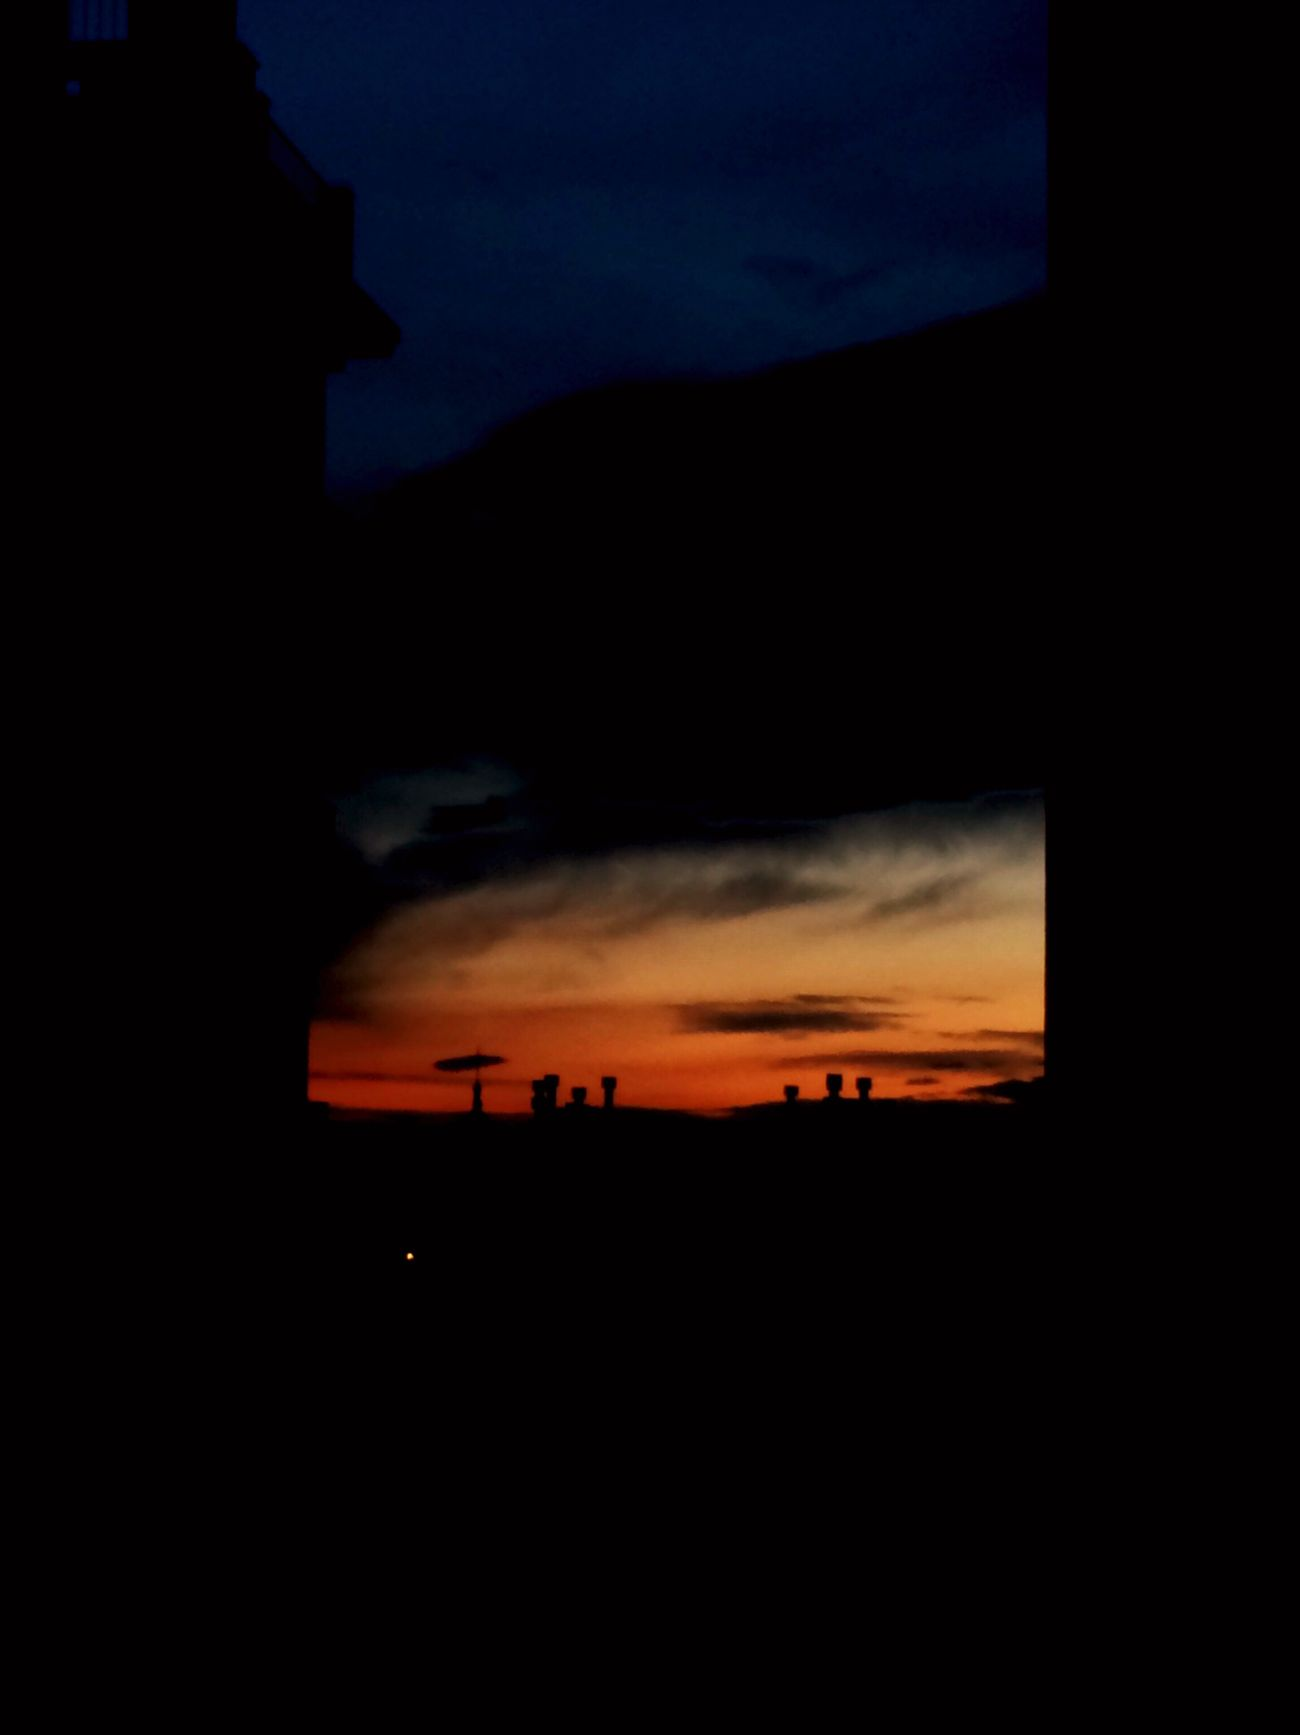 The colors of nature.🔥 Sky Sunset Nature Beauty In Nature No People City Day I'm In Love Tagsforlikes Likeforlike Like4like Followme Colors Nowords